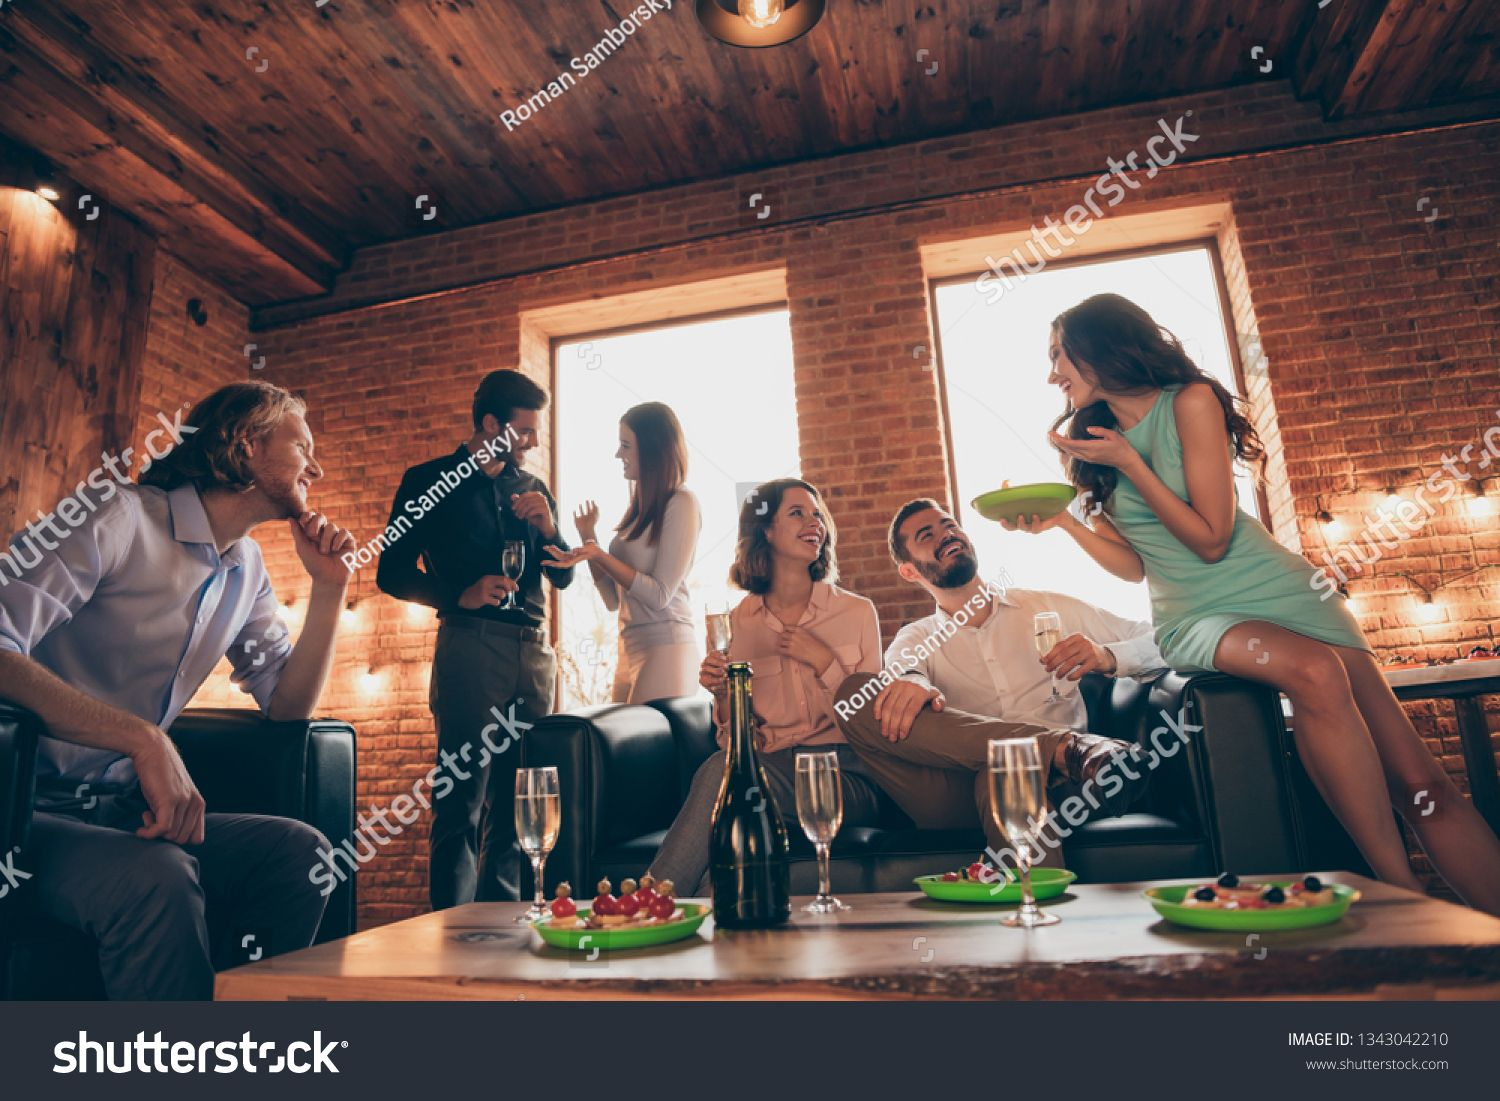 Close up photo funny event social members company buddies dessert she her ladies he him his guys wineglasses golden wine beverage wear dresses shirts formalwear hang out sit sofa loft room indoors ,